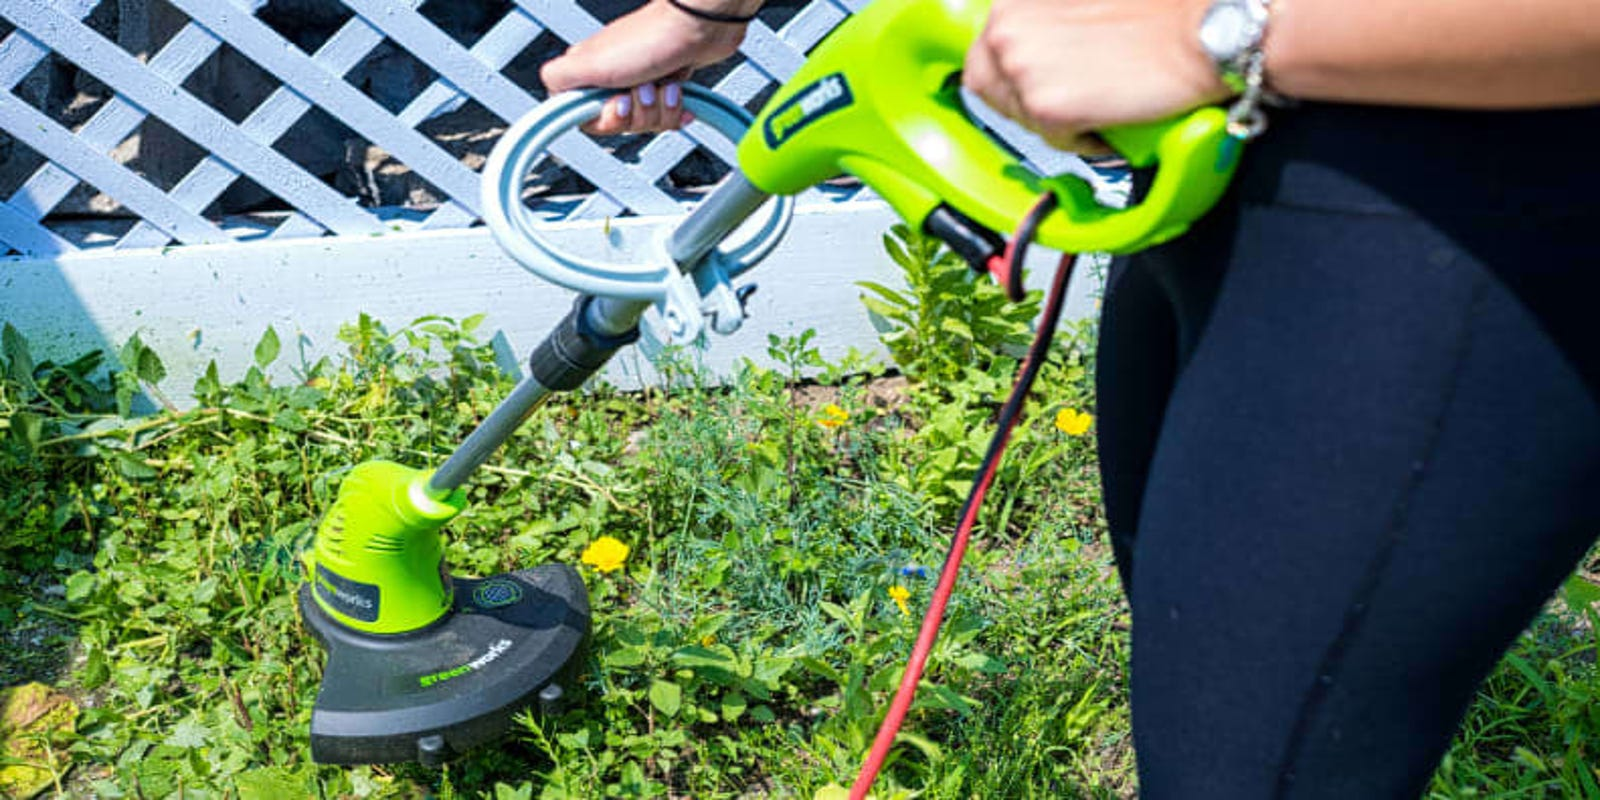 The best garden tools to buy on sale right now